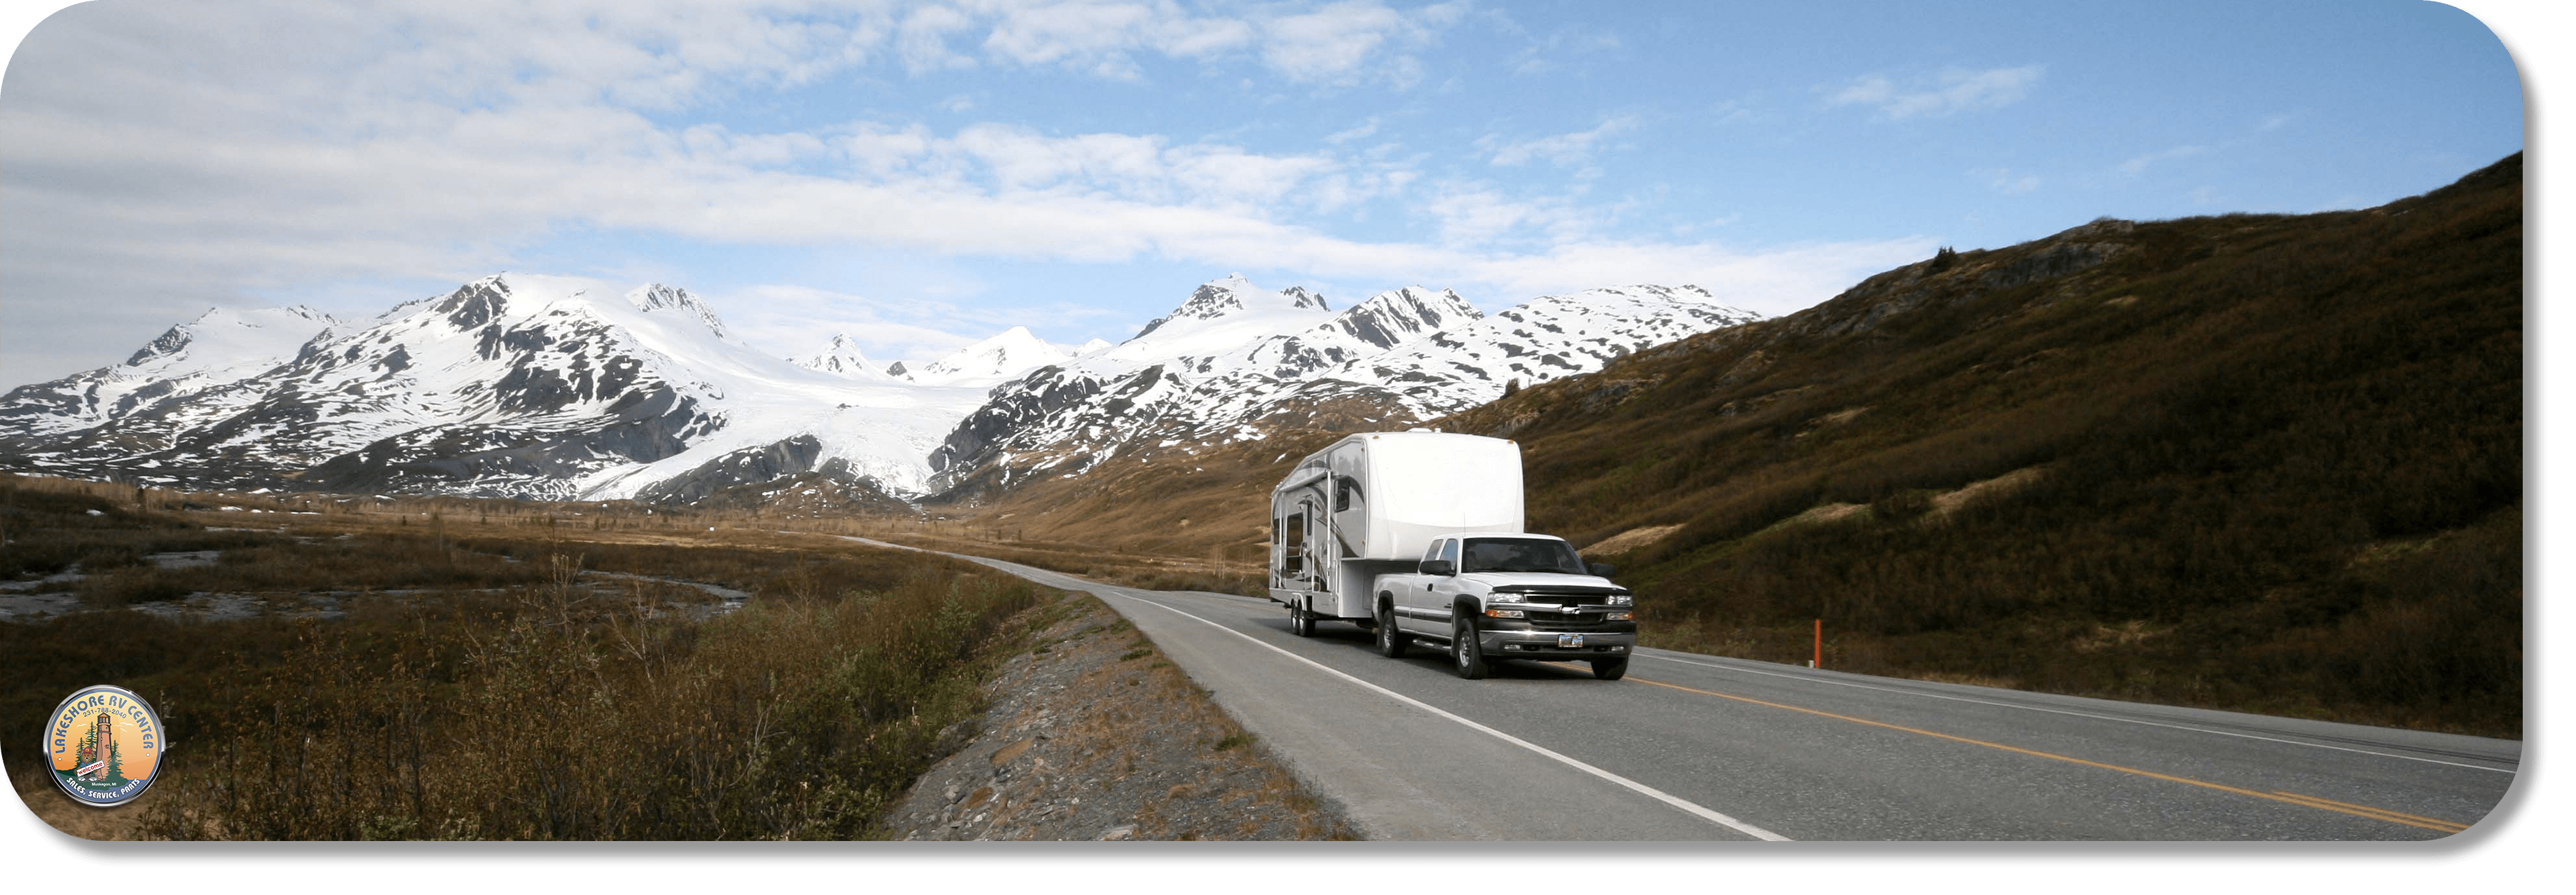 Prepping Your RV for Travel